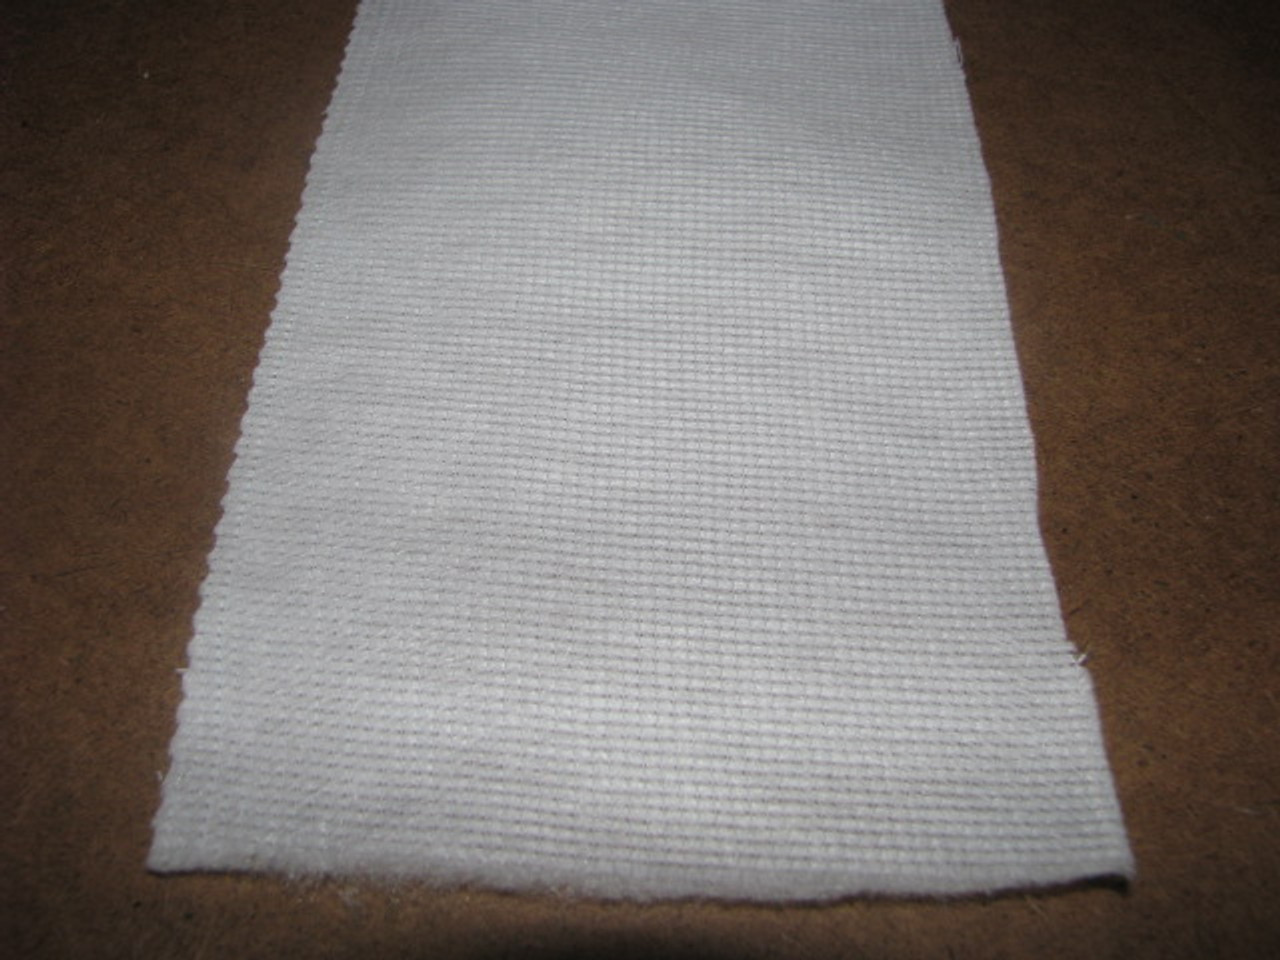 4 Inch Polyester Scrim (SC016) PIECE CUT FROM ROLL PICTURED